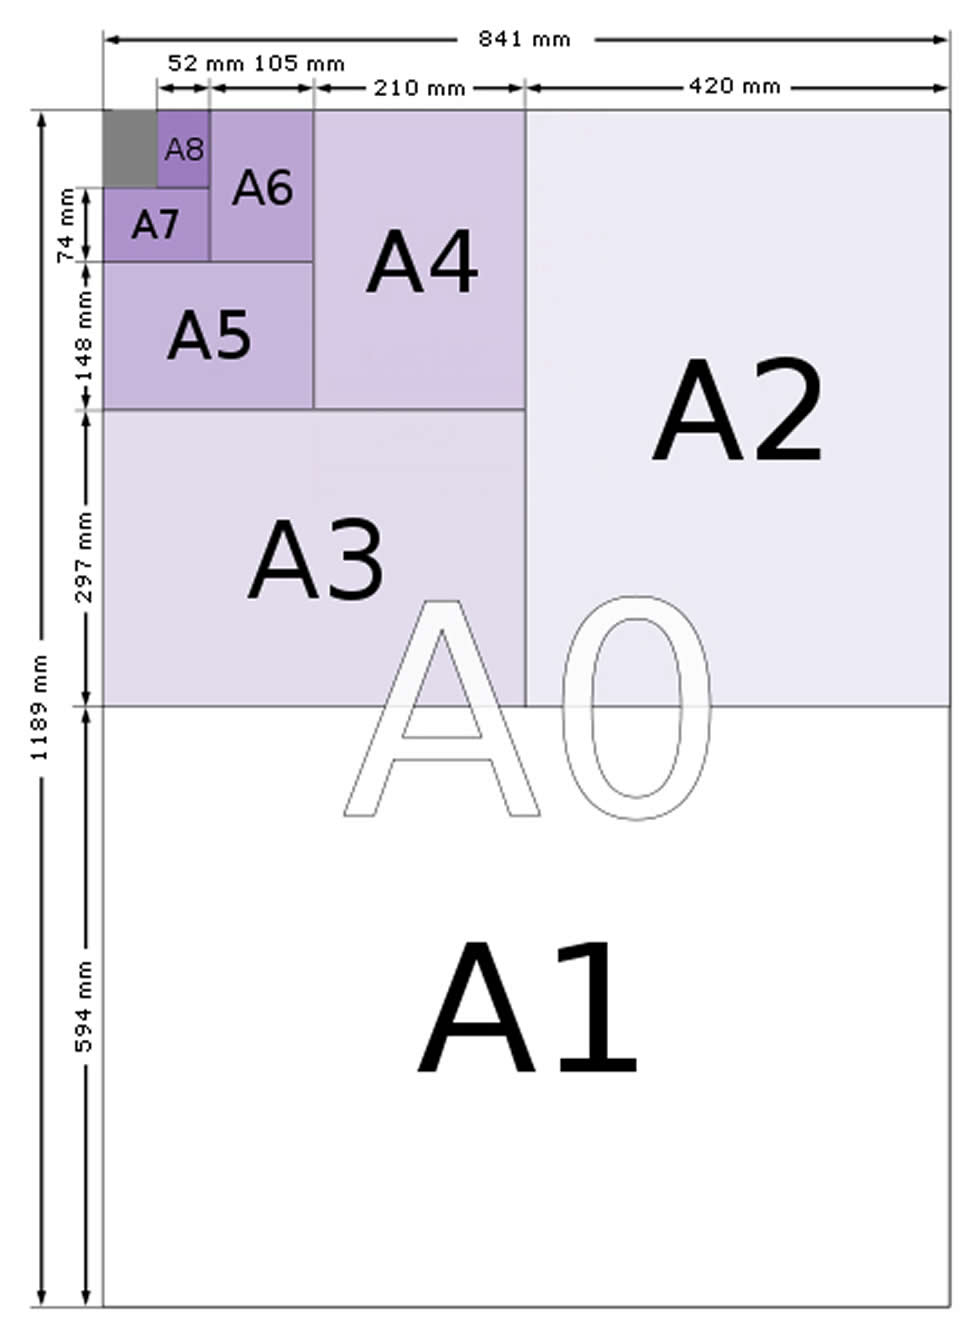 Diagram of A Paper Sizes & Their Relationships